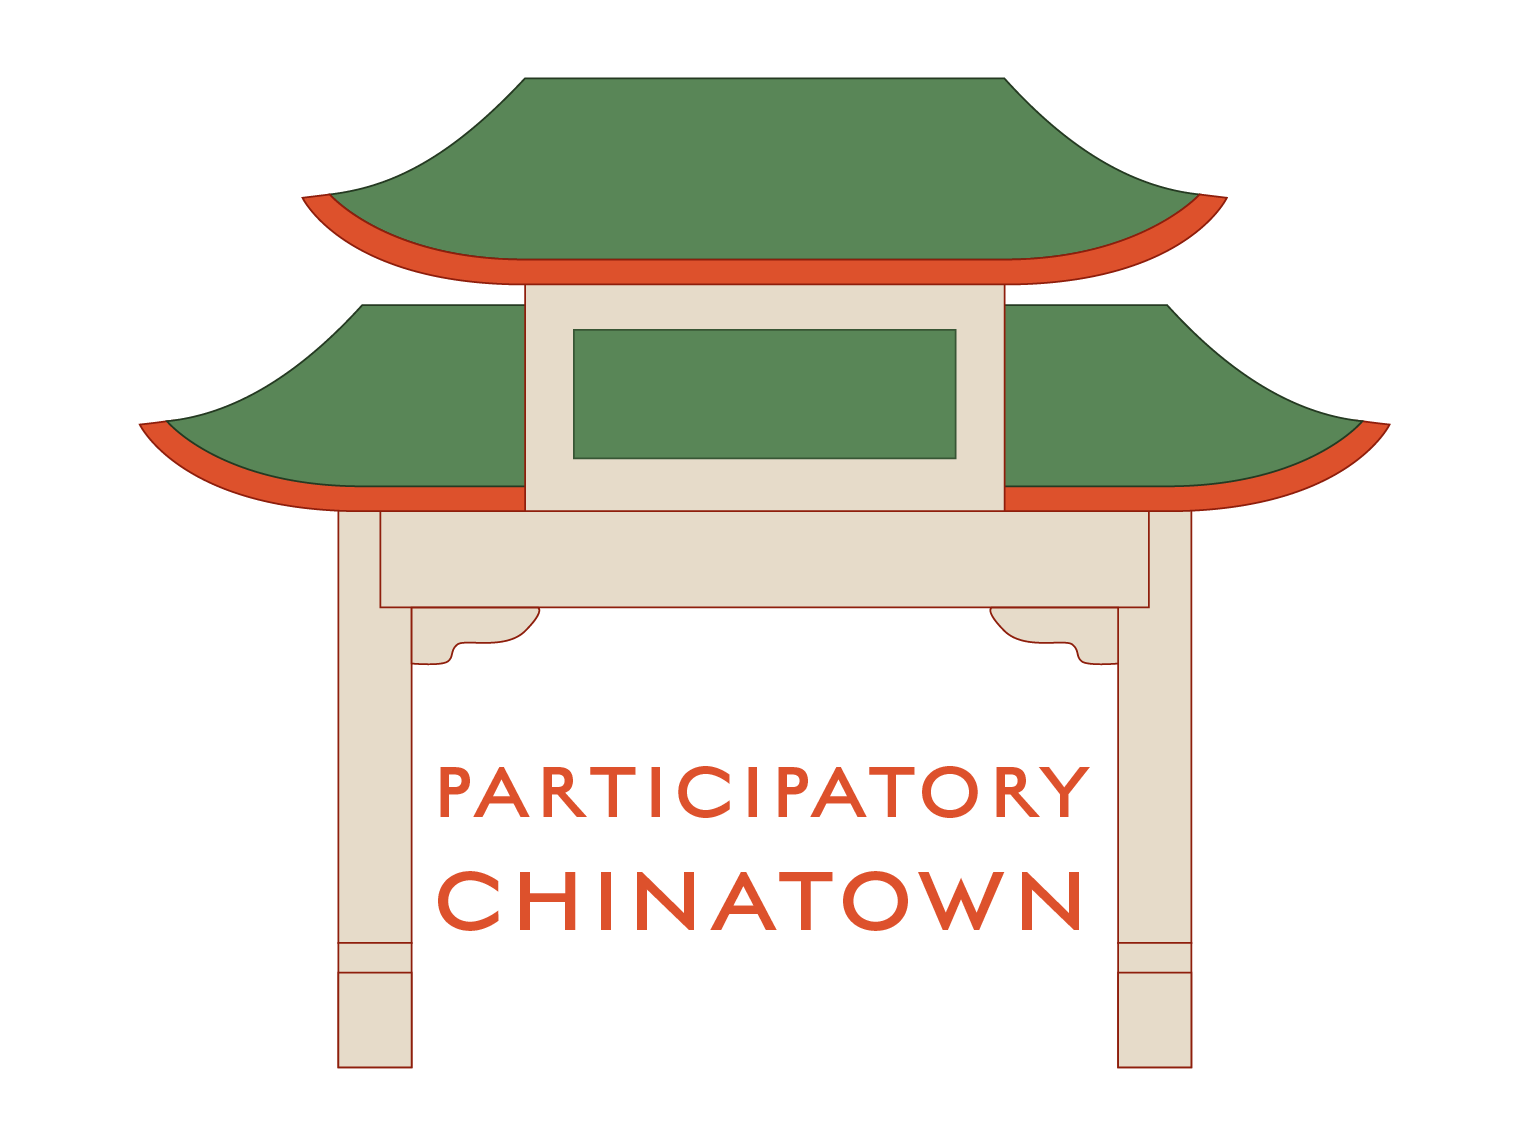 Thumbnail image for 'Participatory Chinatown' project